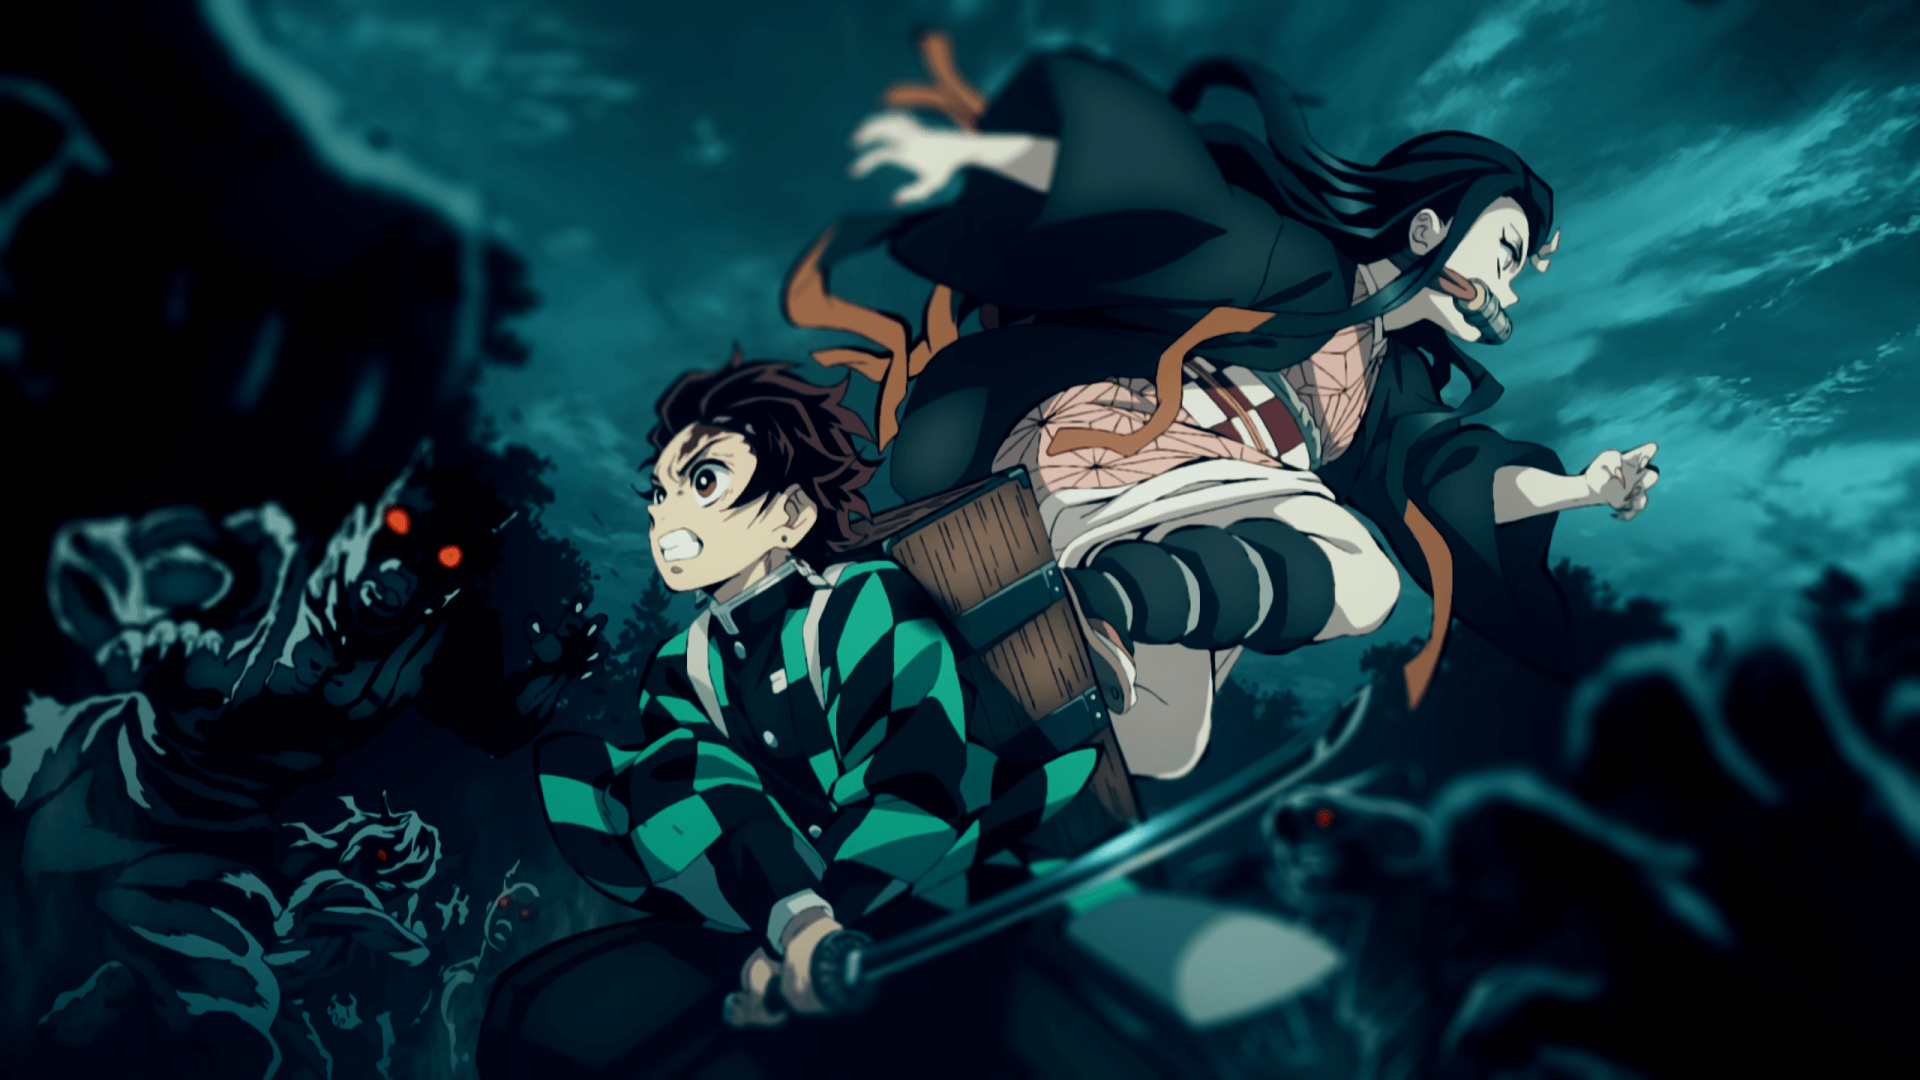 195 Demon Slayer: Kimetsu no Yaiba HD Wallpapers